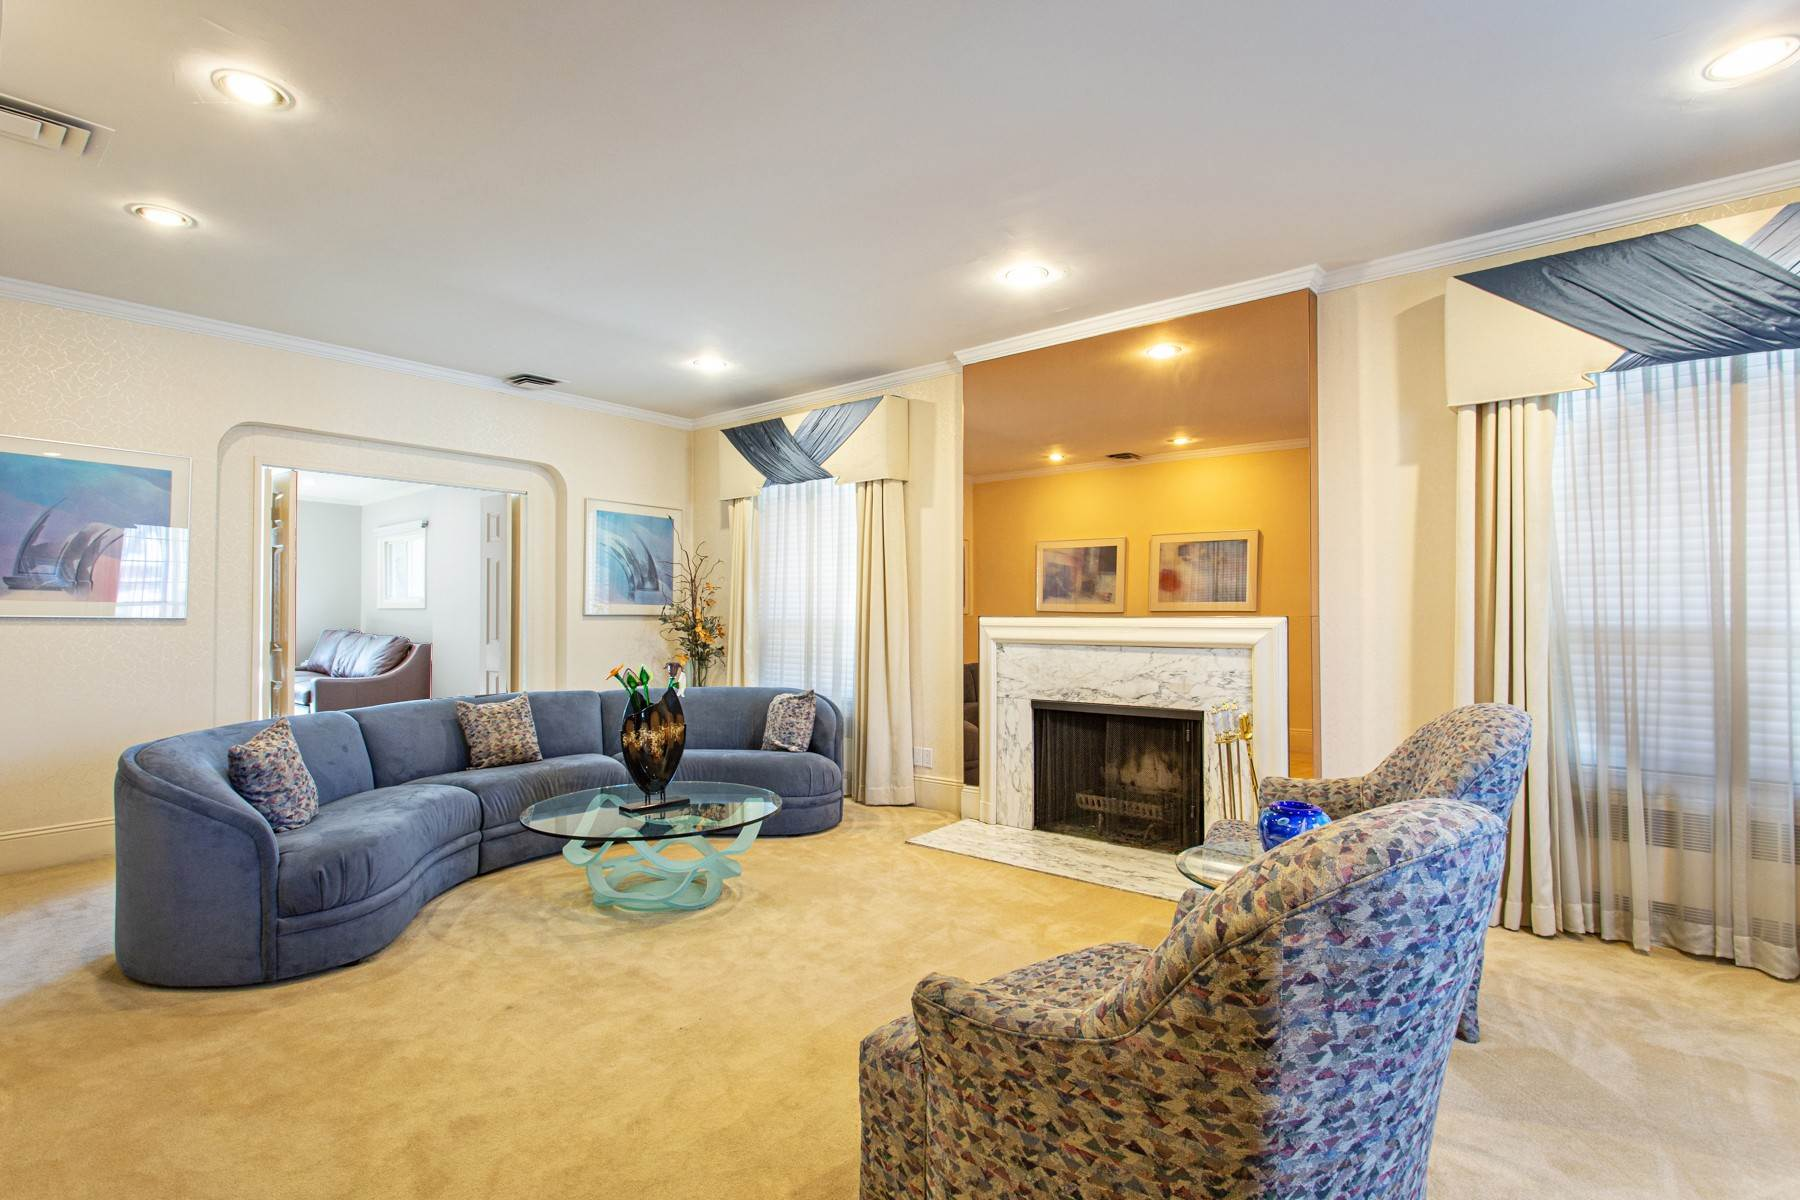 3. Single Family Homes for Sale at 'GRACIOUS LIVING IN KEW GARDENS' 103 Mowbray Drive, Kew Gardens, New York 11415 United States